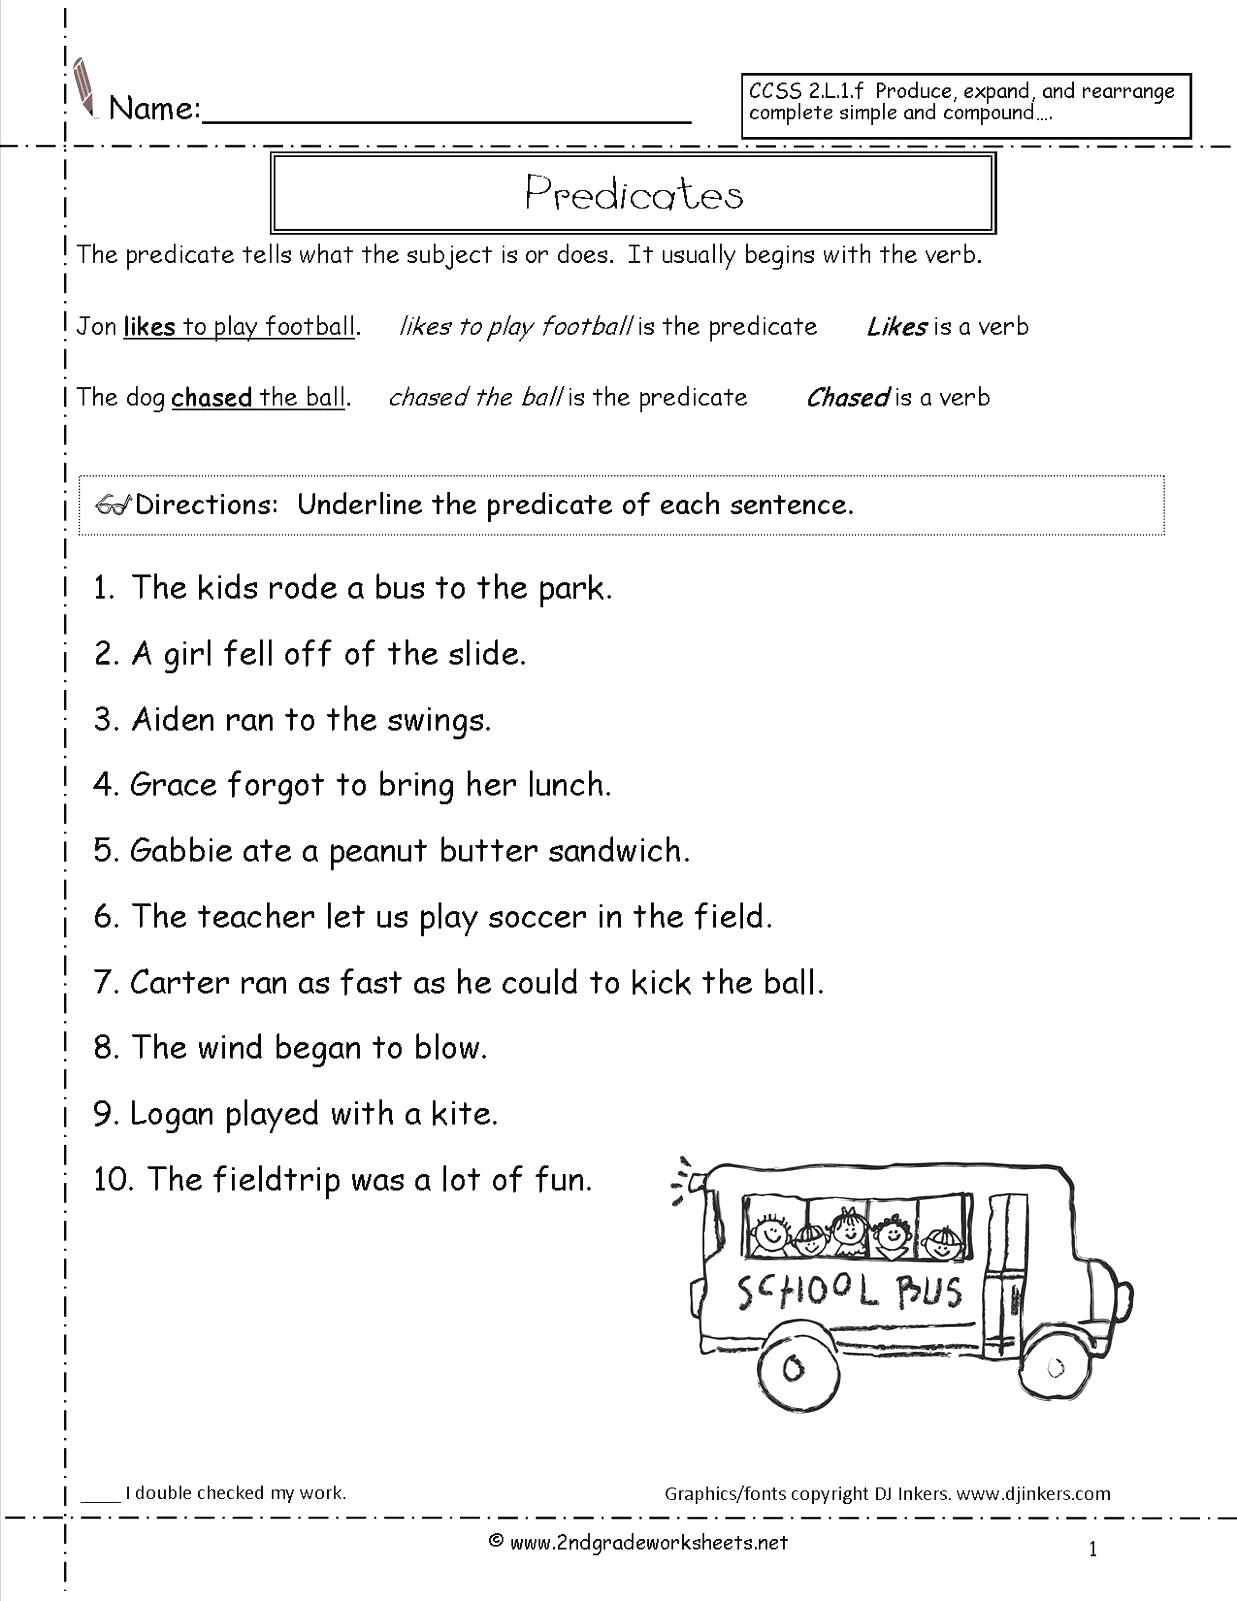 Finding Subjects And Verbs Worksheets